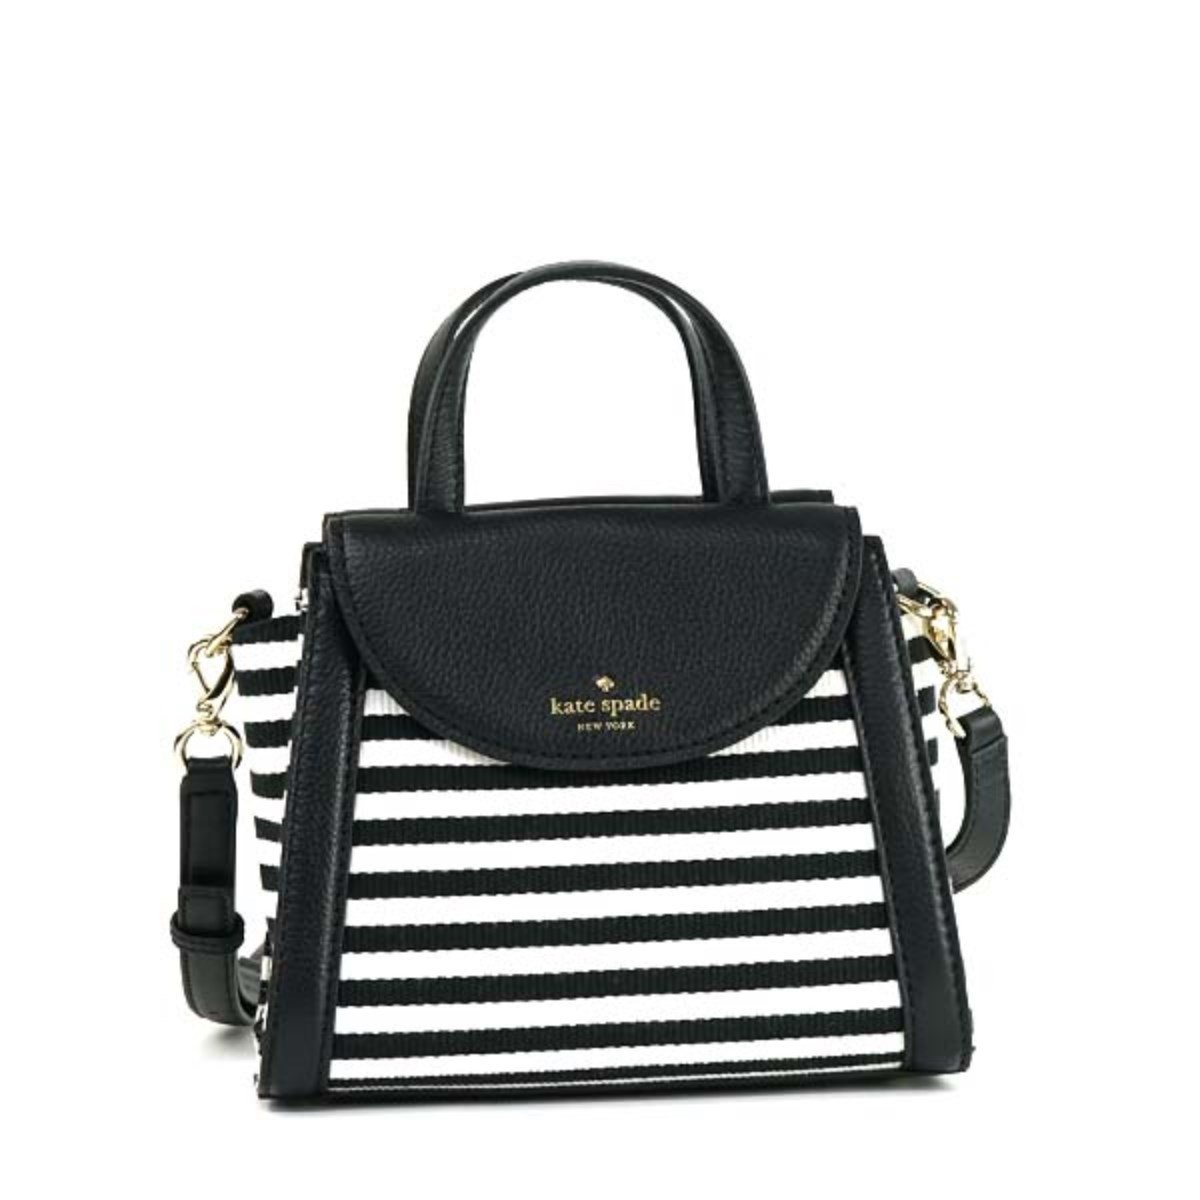 ケイトスペード バッグ ハンドバッグ KATE SPADE COBBLE HILL STRIPE PXRU6742 SMALL ADRIEN 17 BLACK/CREAM 並行輸入品 B01H7KYKZQ